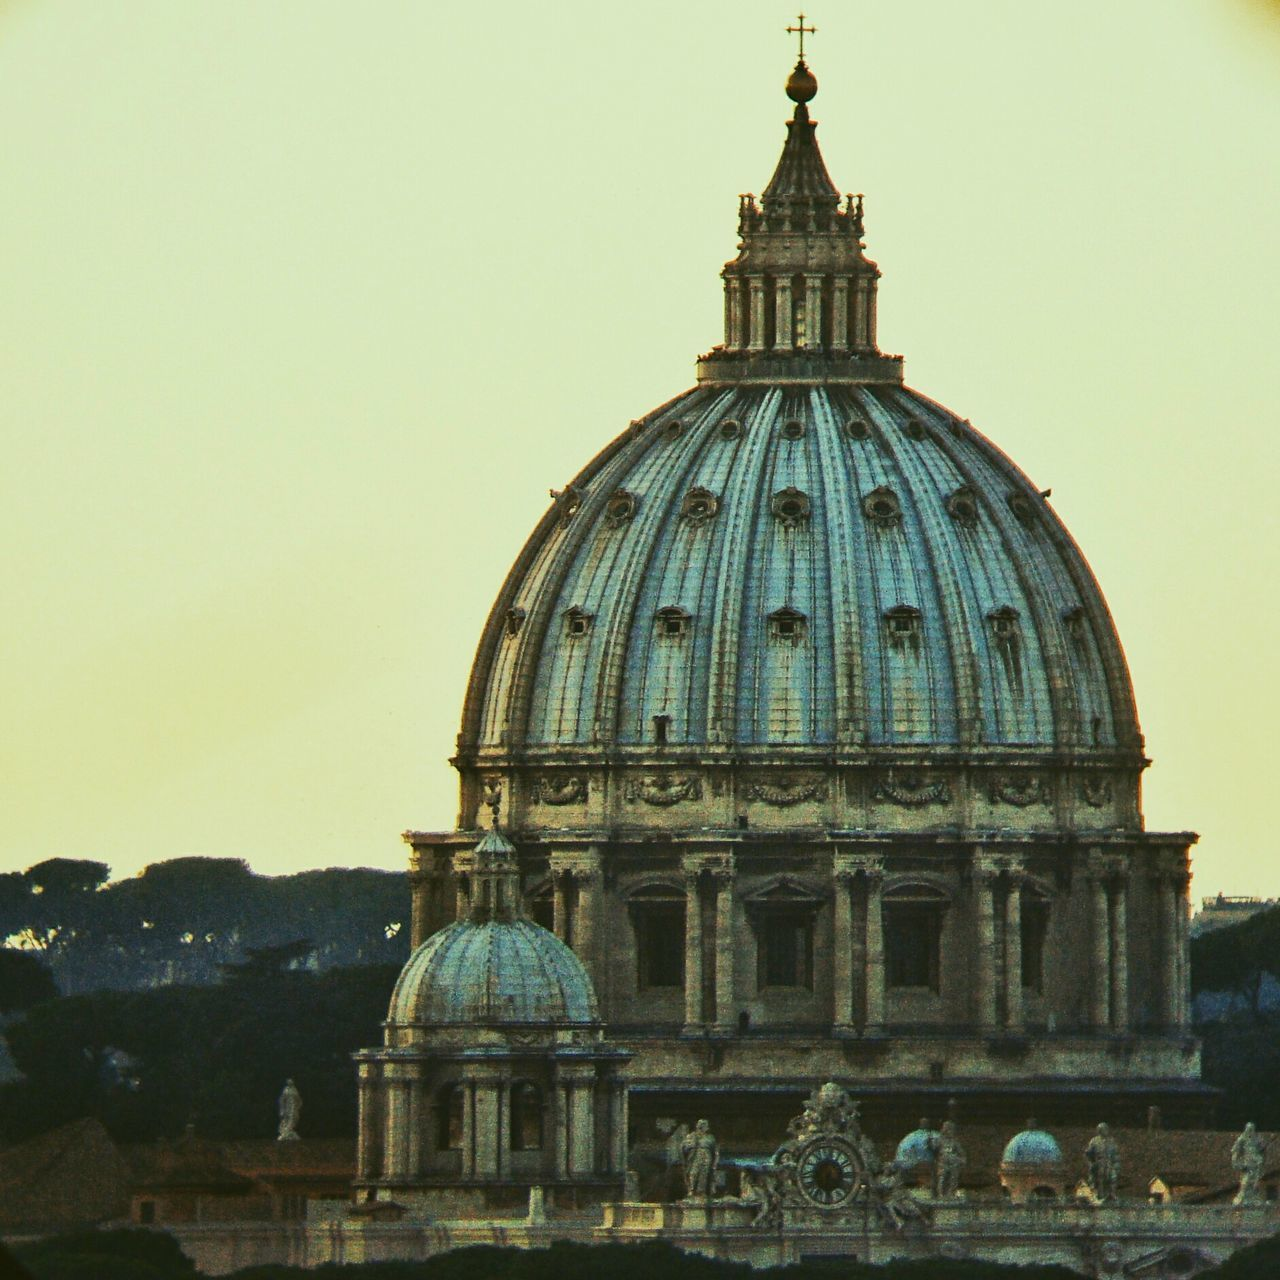 Architecture Built Structure Building Exterior Sky Dome Travel Destinations Sunset No People Day Vatican Vatican City Basilica Di San Pietro In Vaticano Italy Italia Europe Eurotrip Europe Trip Rome Roma Basilic Basilica